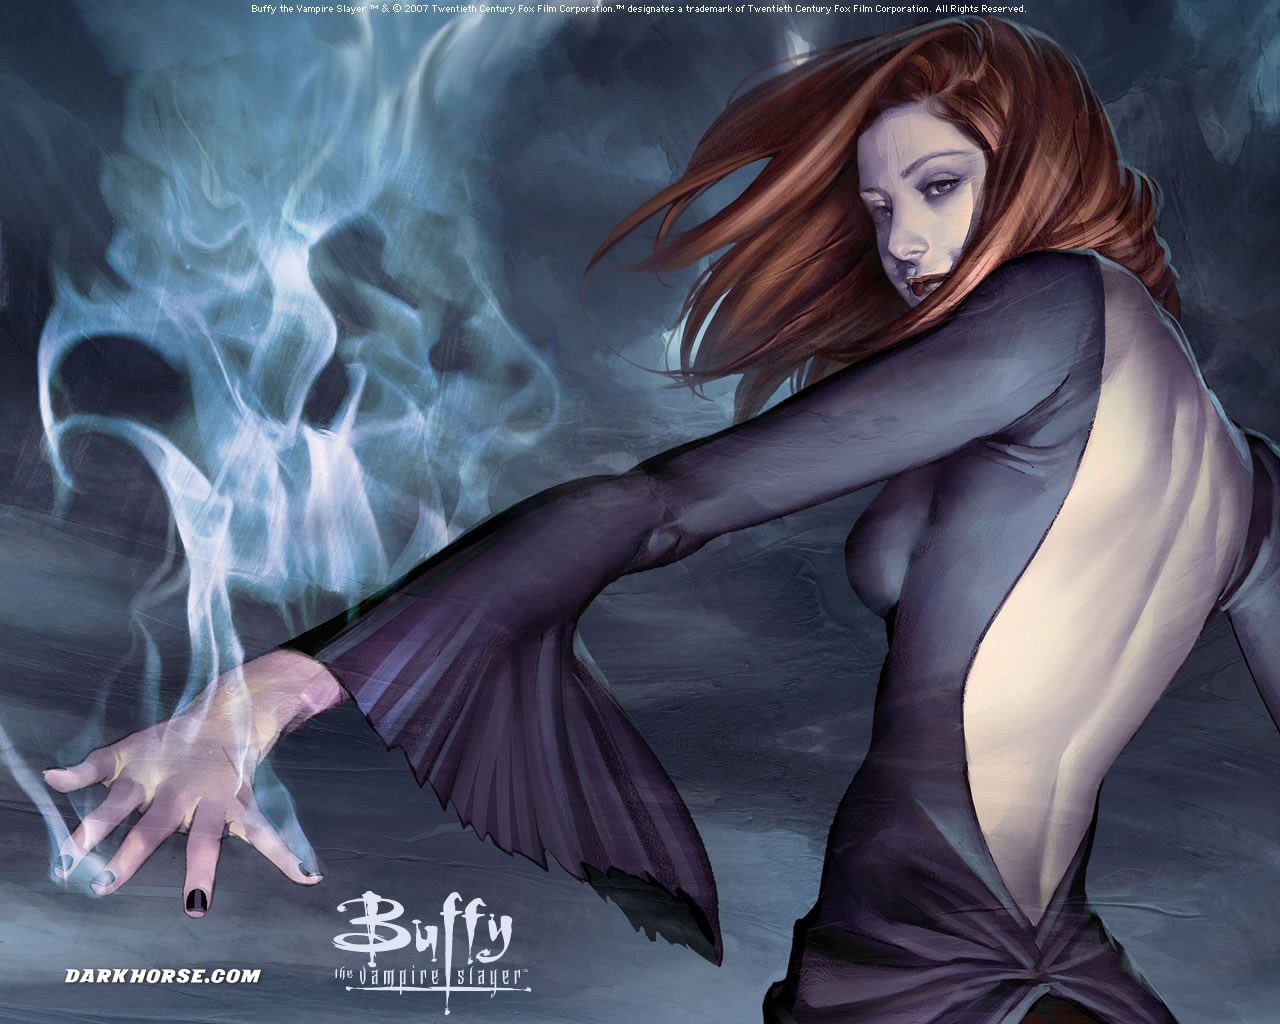 Buffy Comic Wallpaper - Buffyverse Comics Wallpaper ...